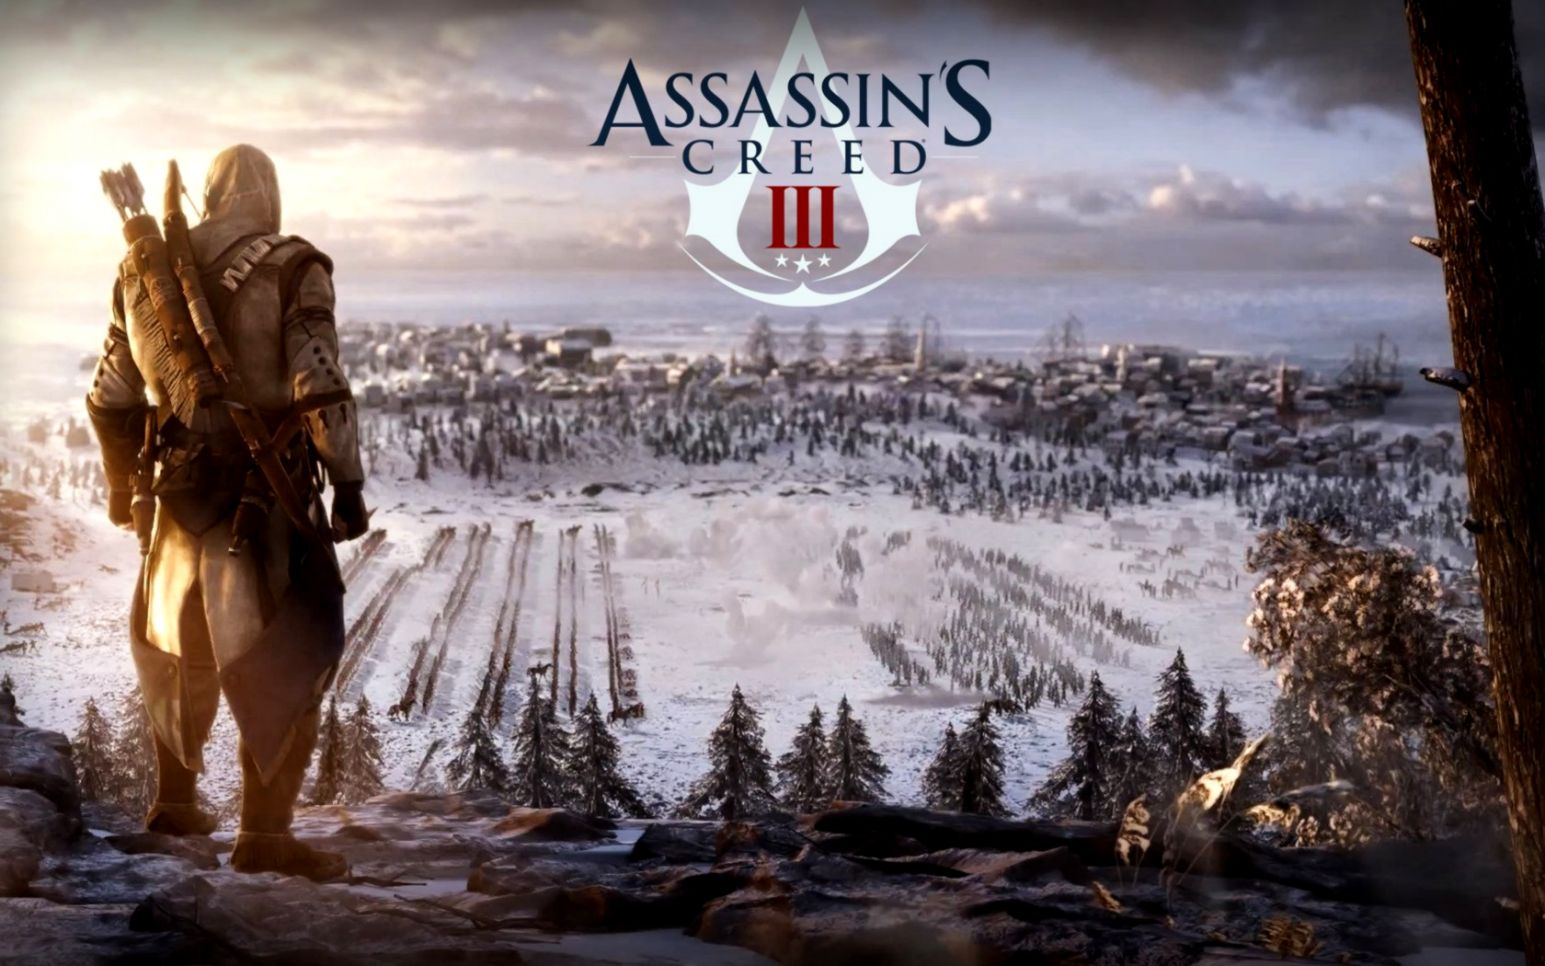 186 Assassins Creed III HD Wallpapers Background Images